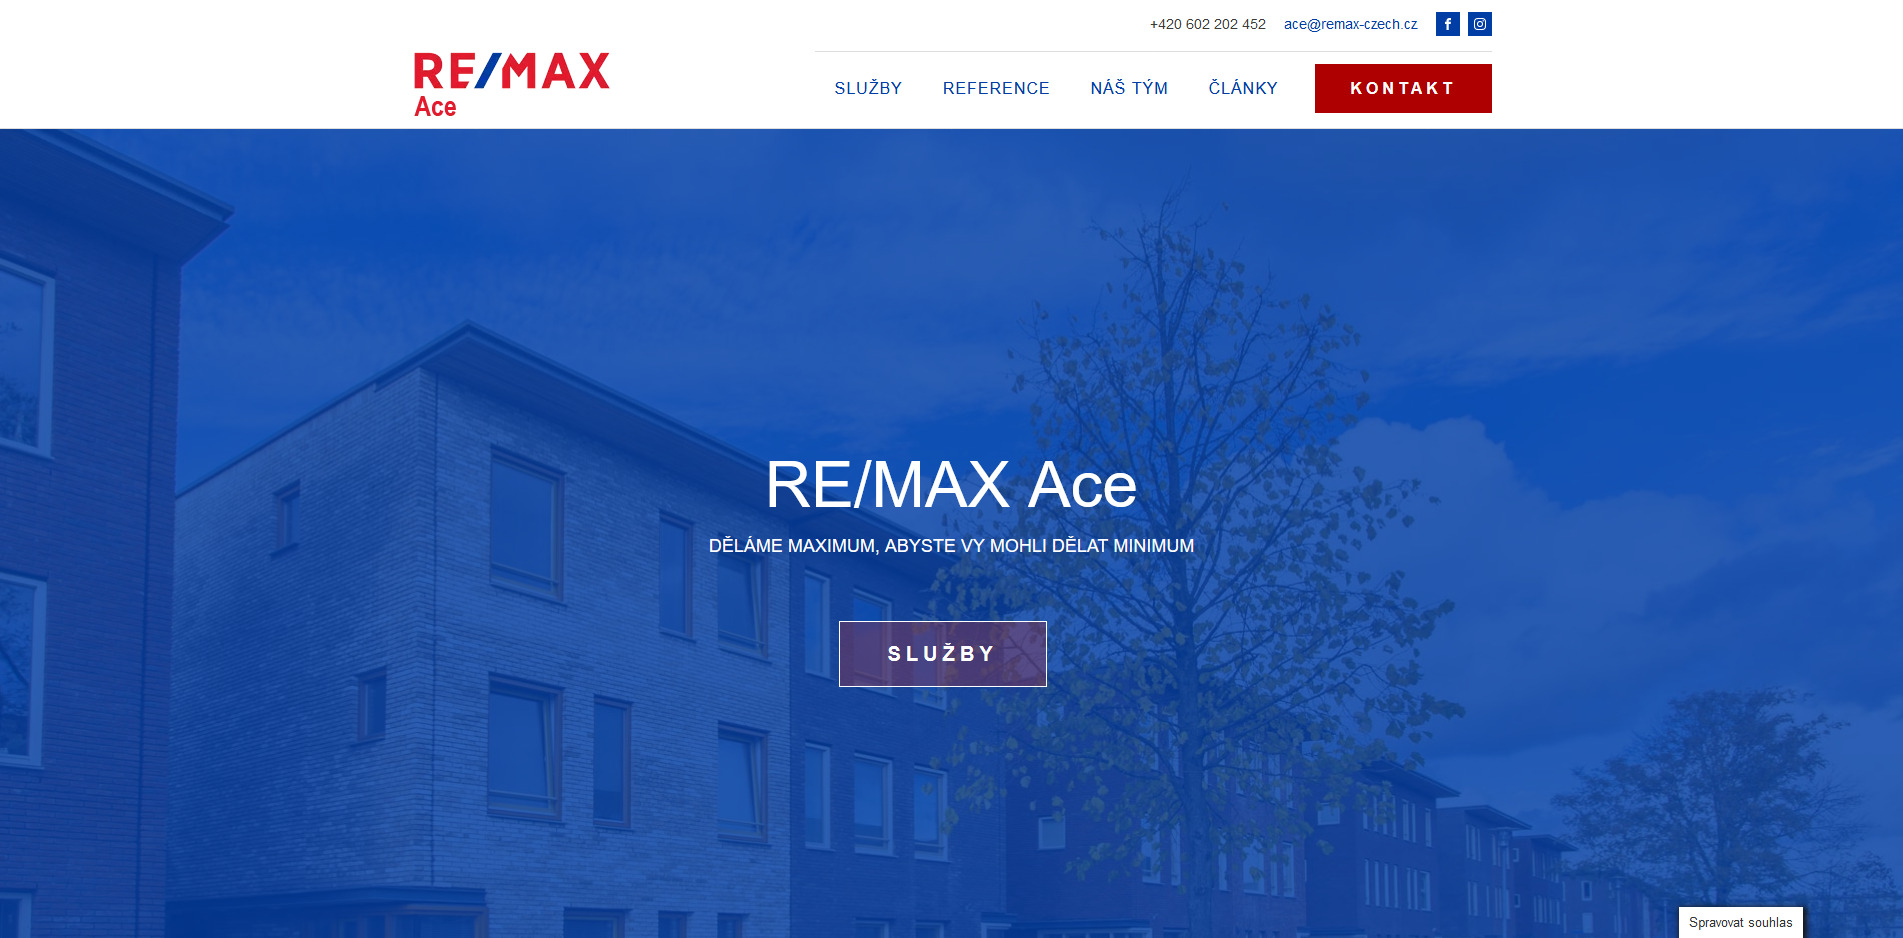 Remax ACE